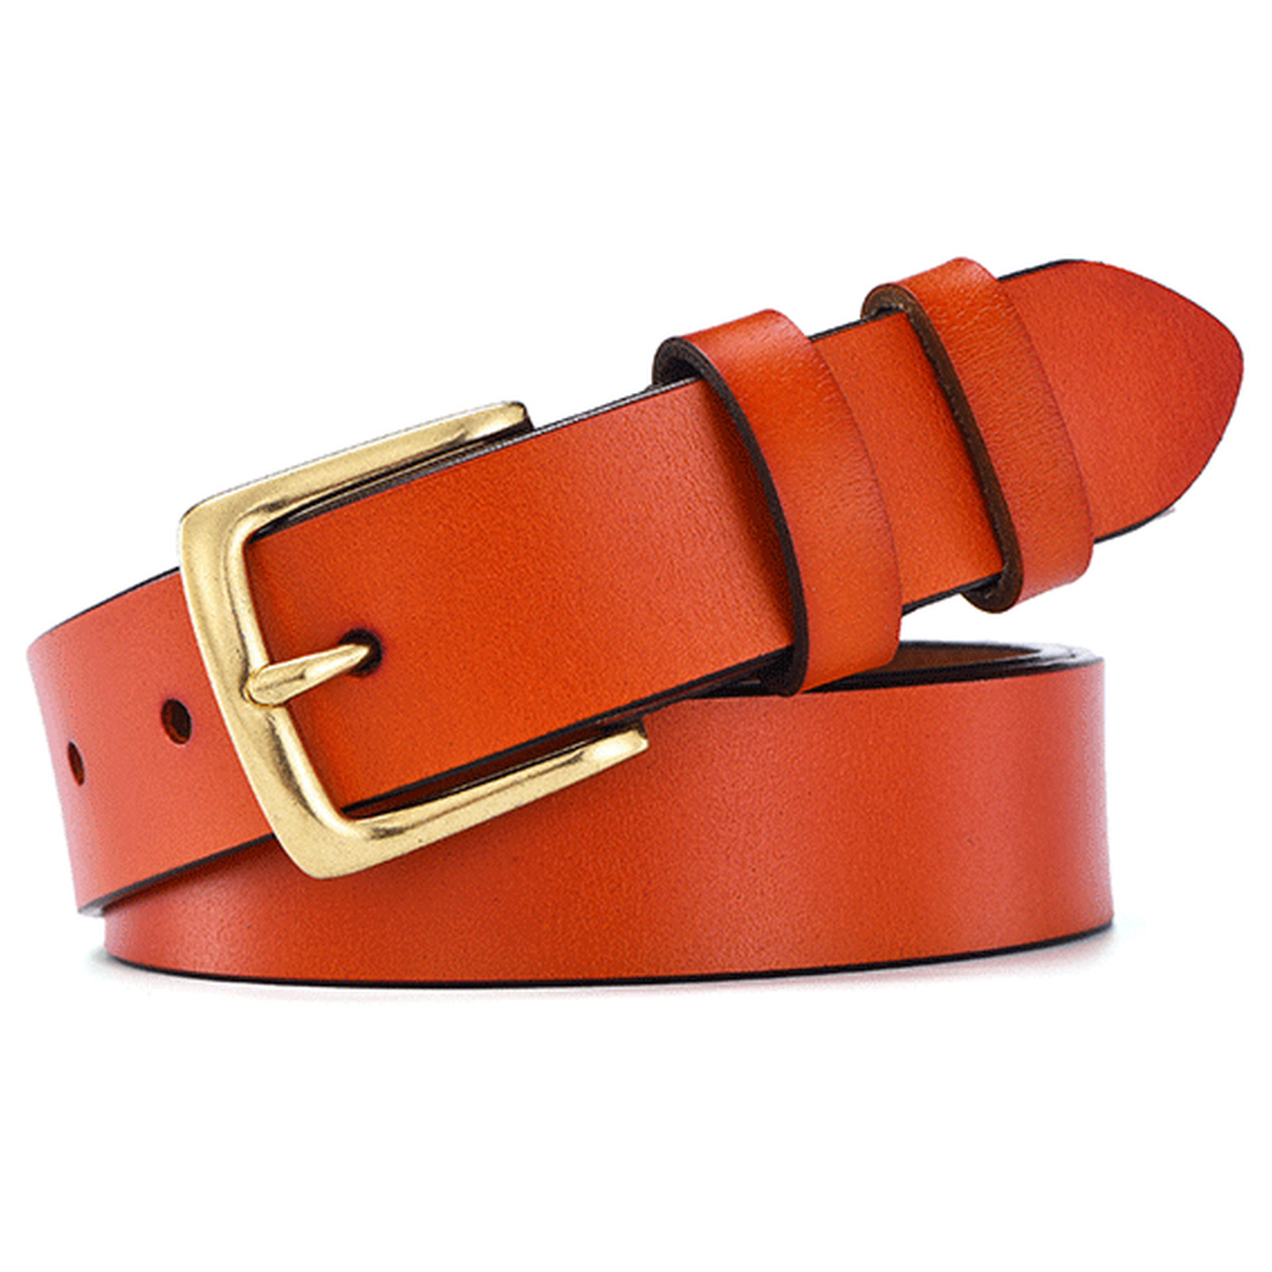 Women's Classic Gold Color Metal Buckle Handcrafted Genuine Leather Jean Belt (Sytle 3w019)